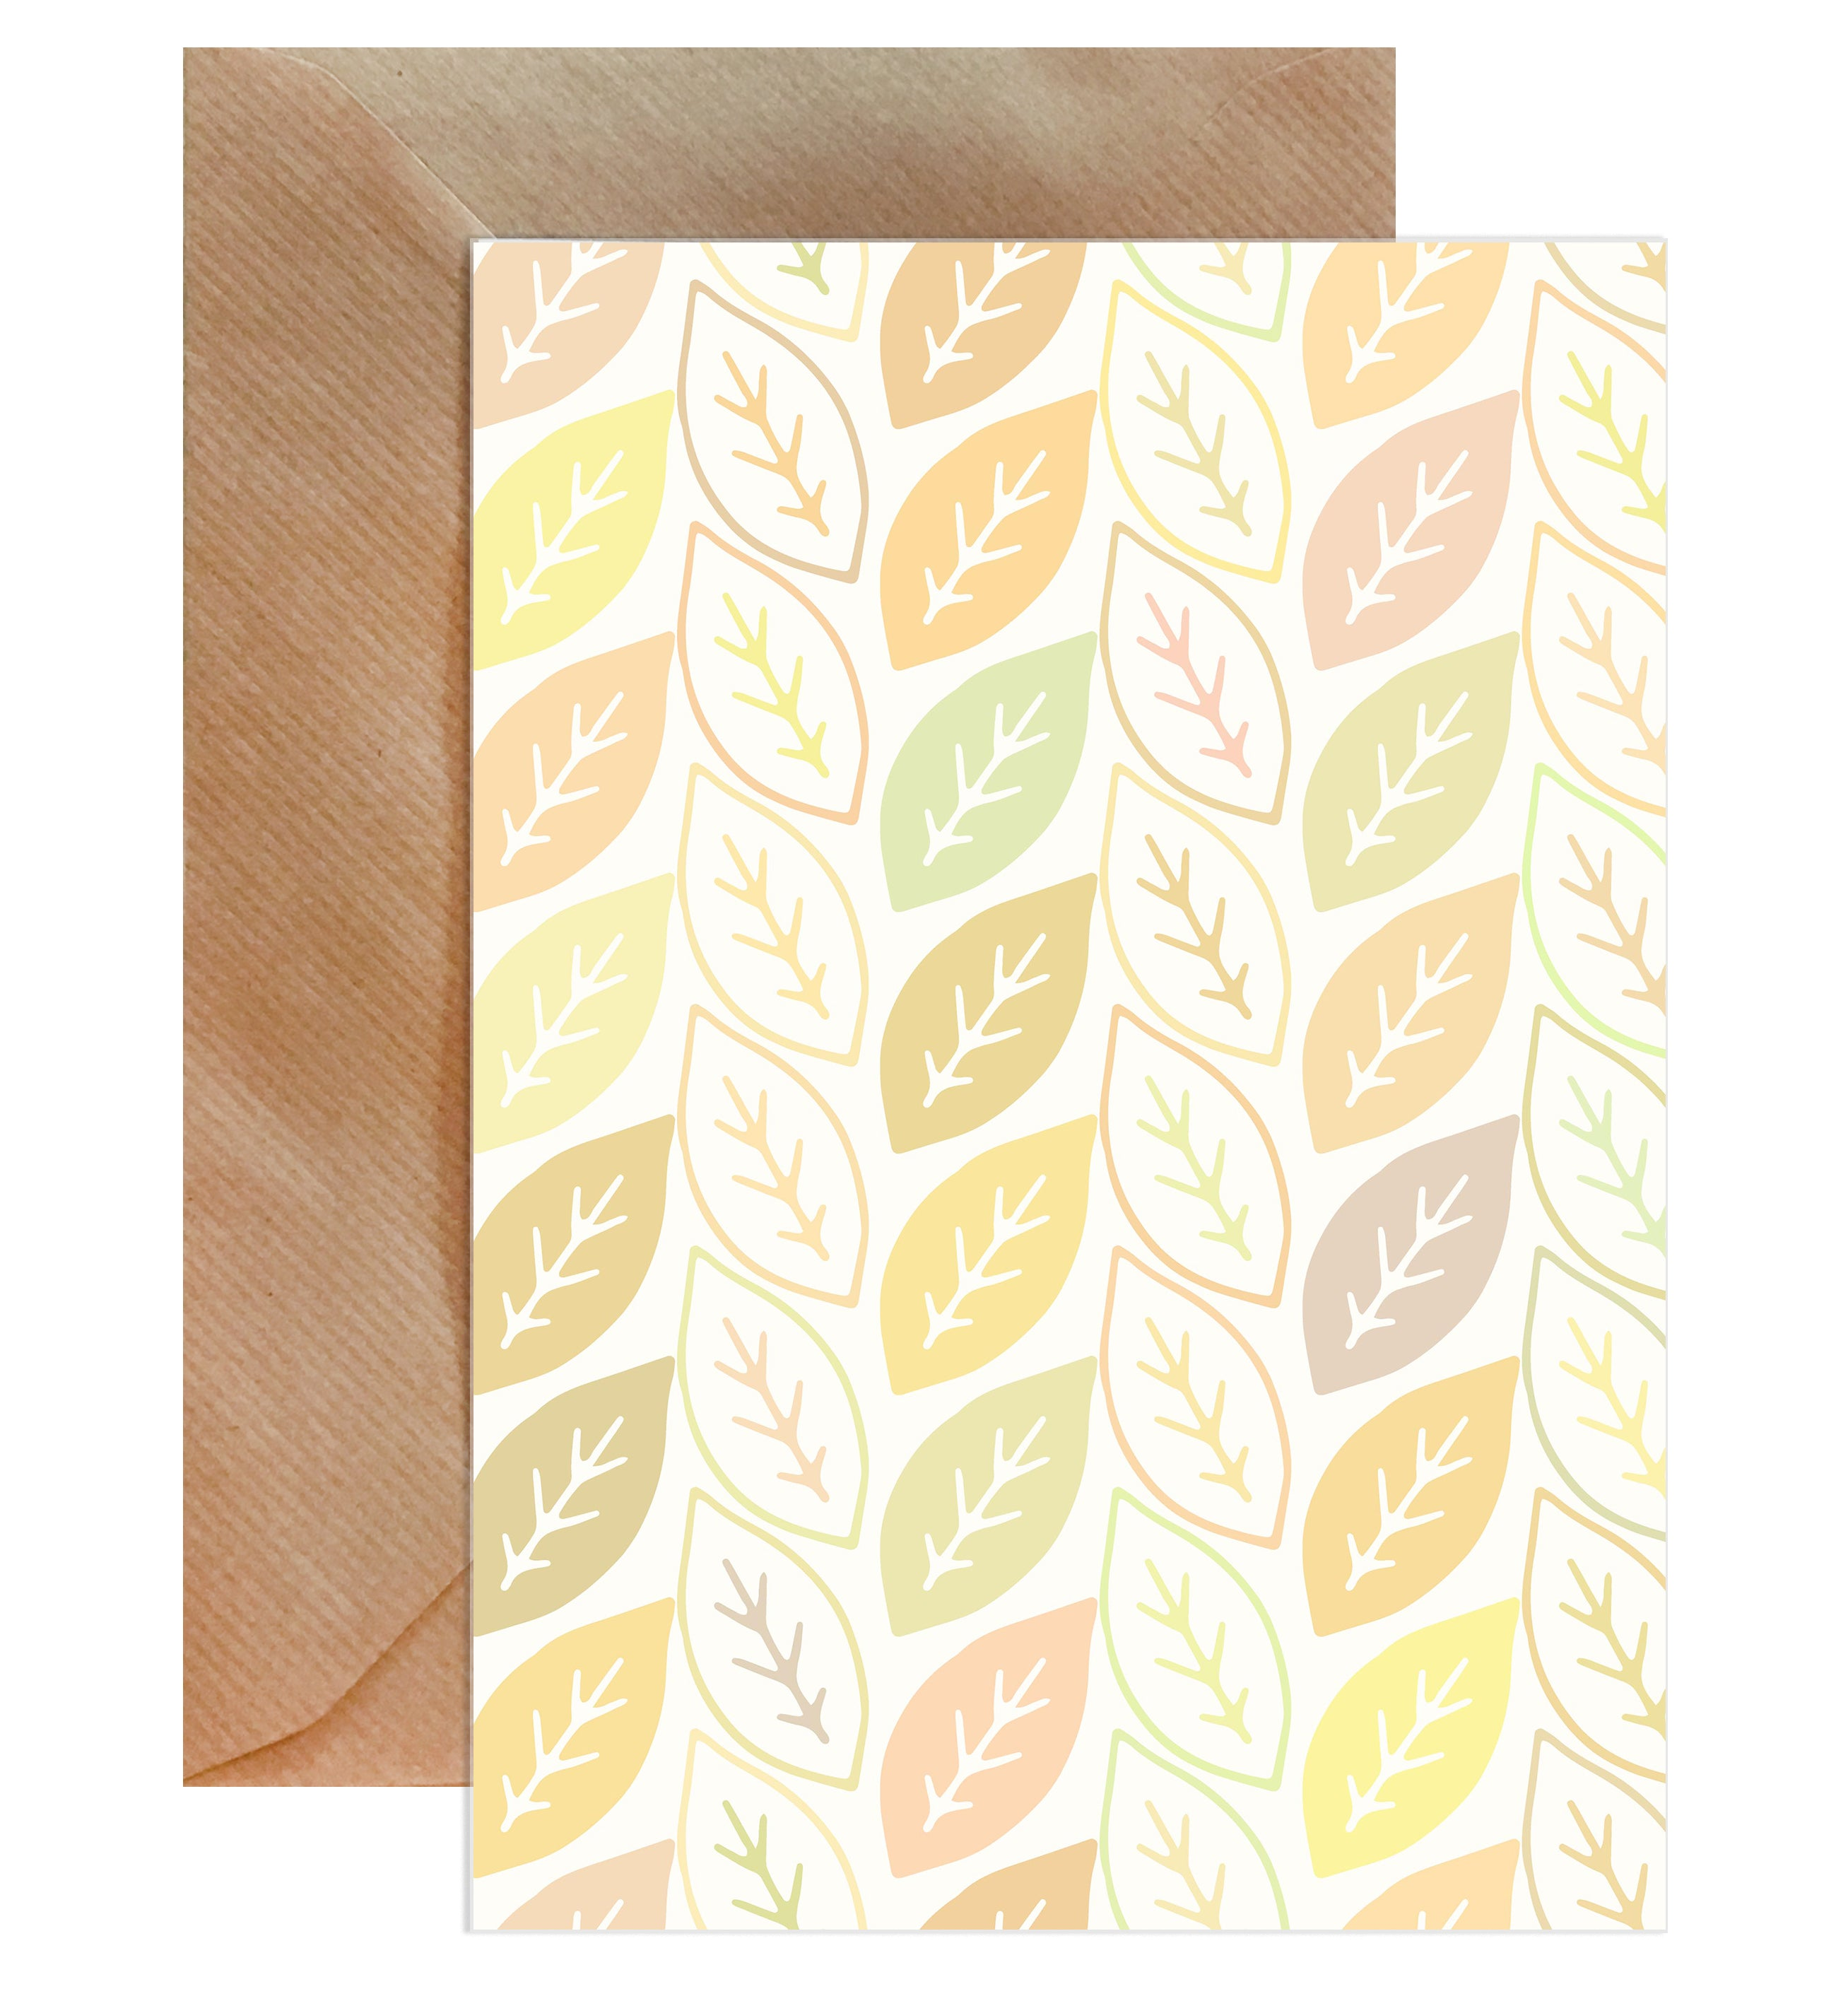 Autumn Leaves Blank Greeting Card-Greeting Cards-Mode Prints